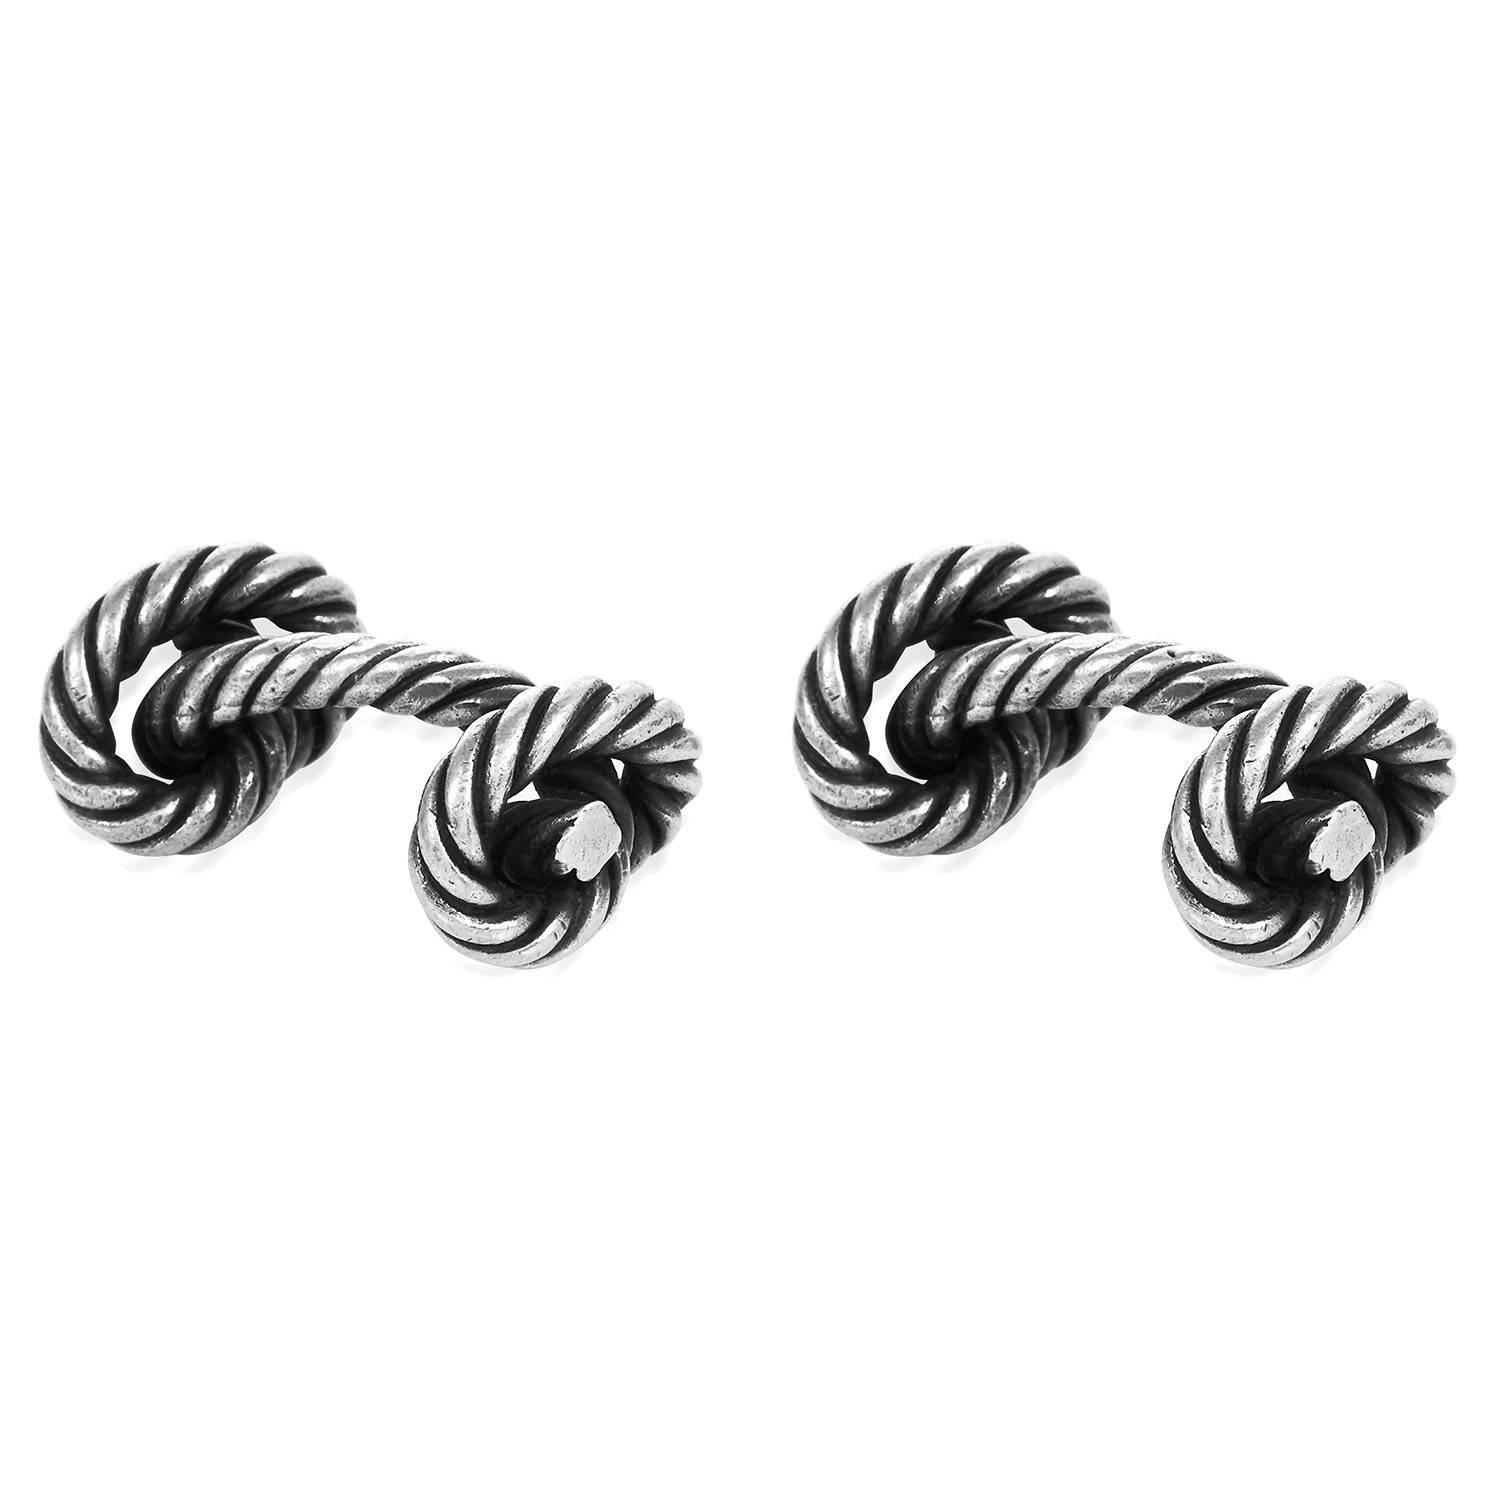 A PAIR OF KNOTTED ROPE CUFFLINKS, HERMES in silver, designed as knotted rope, signed Hermes,